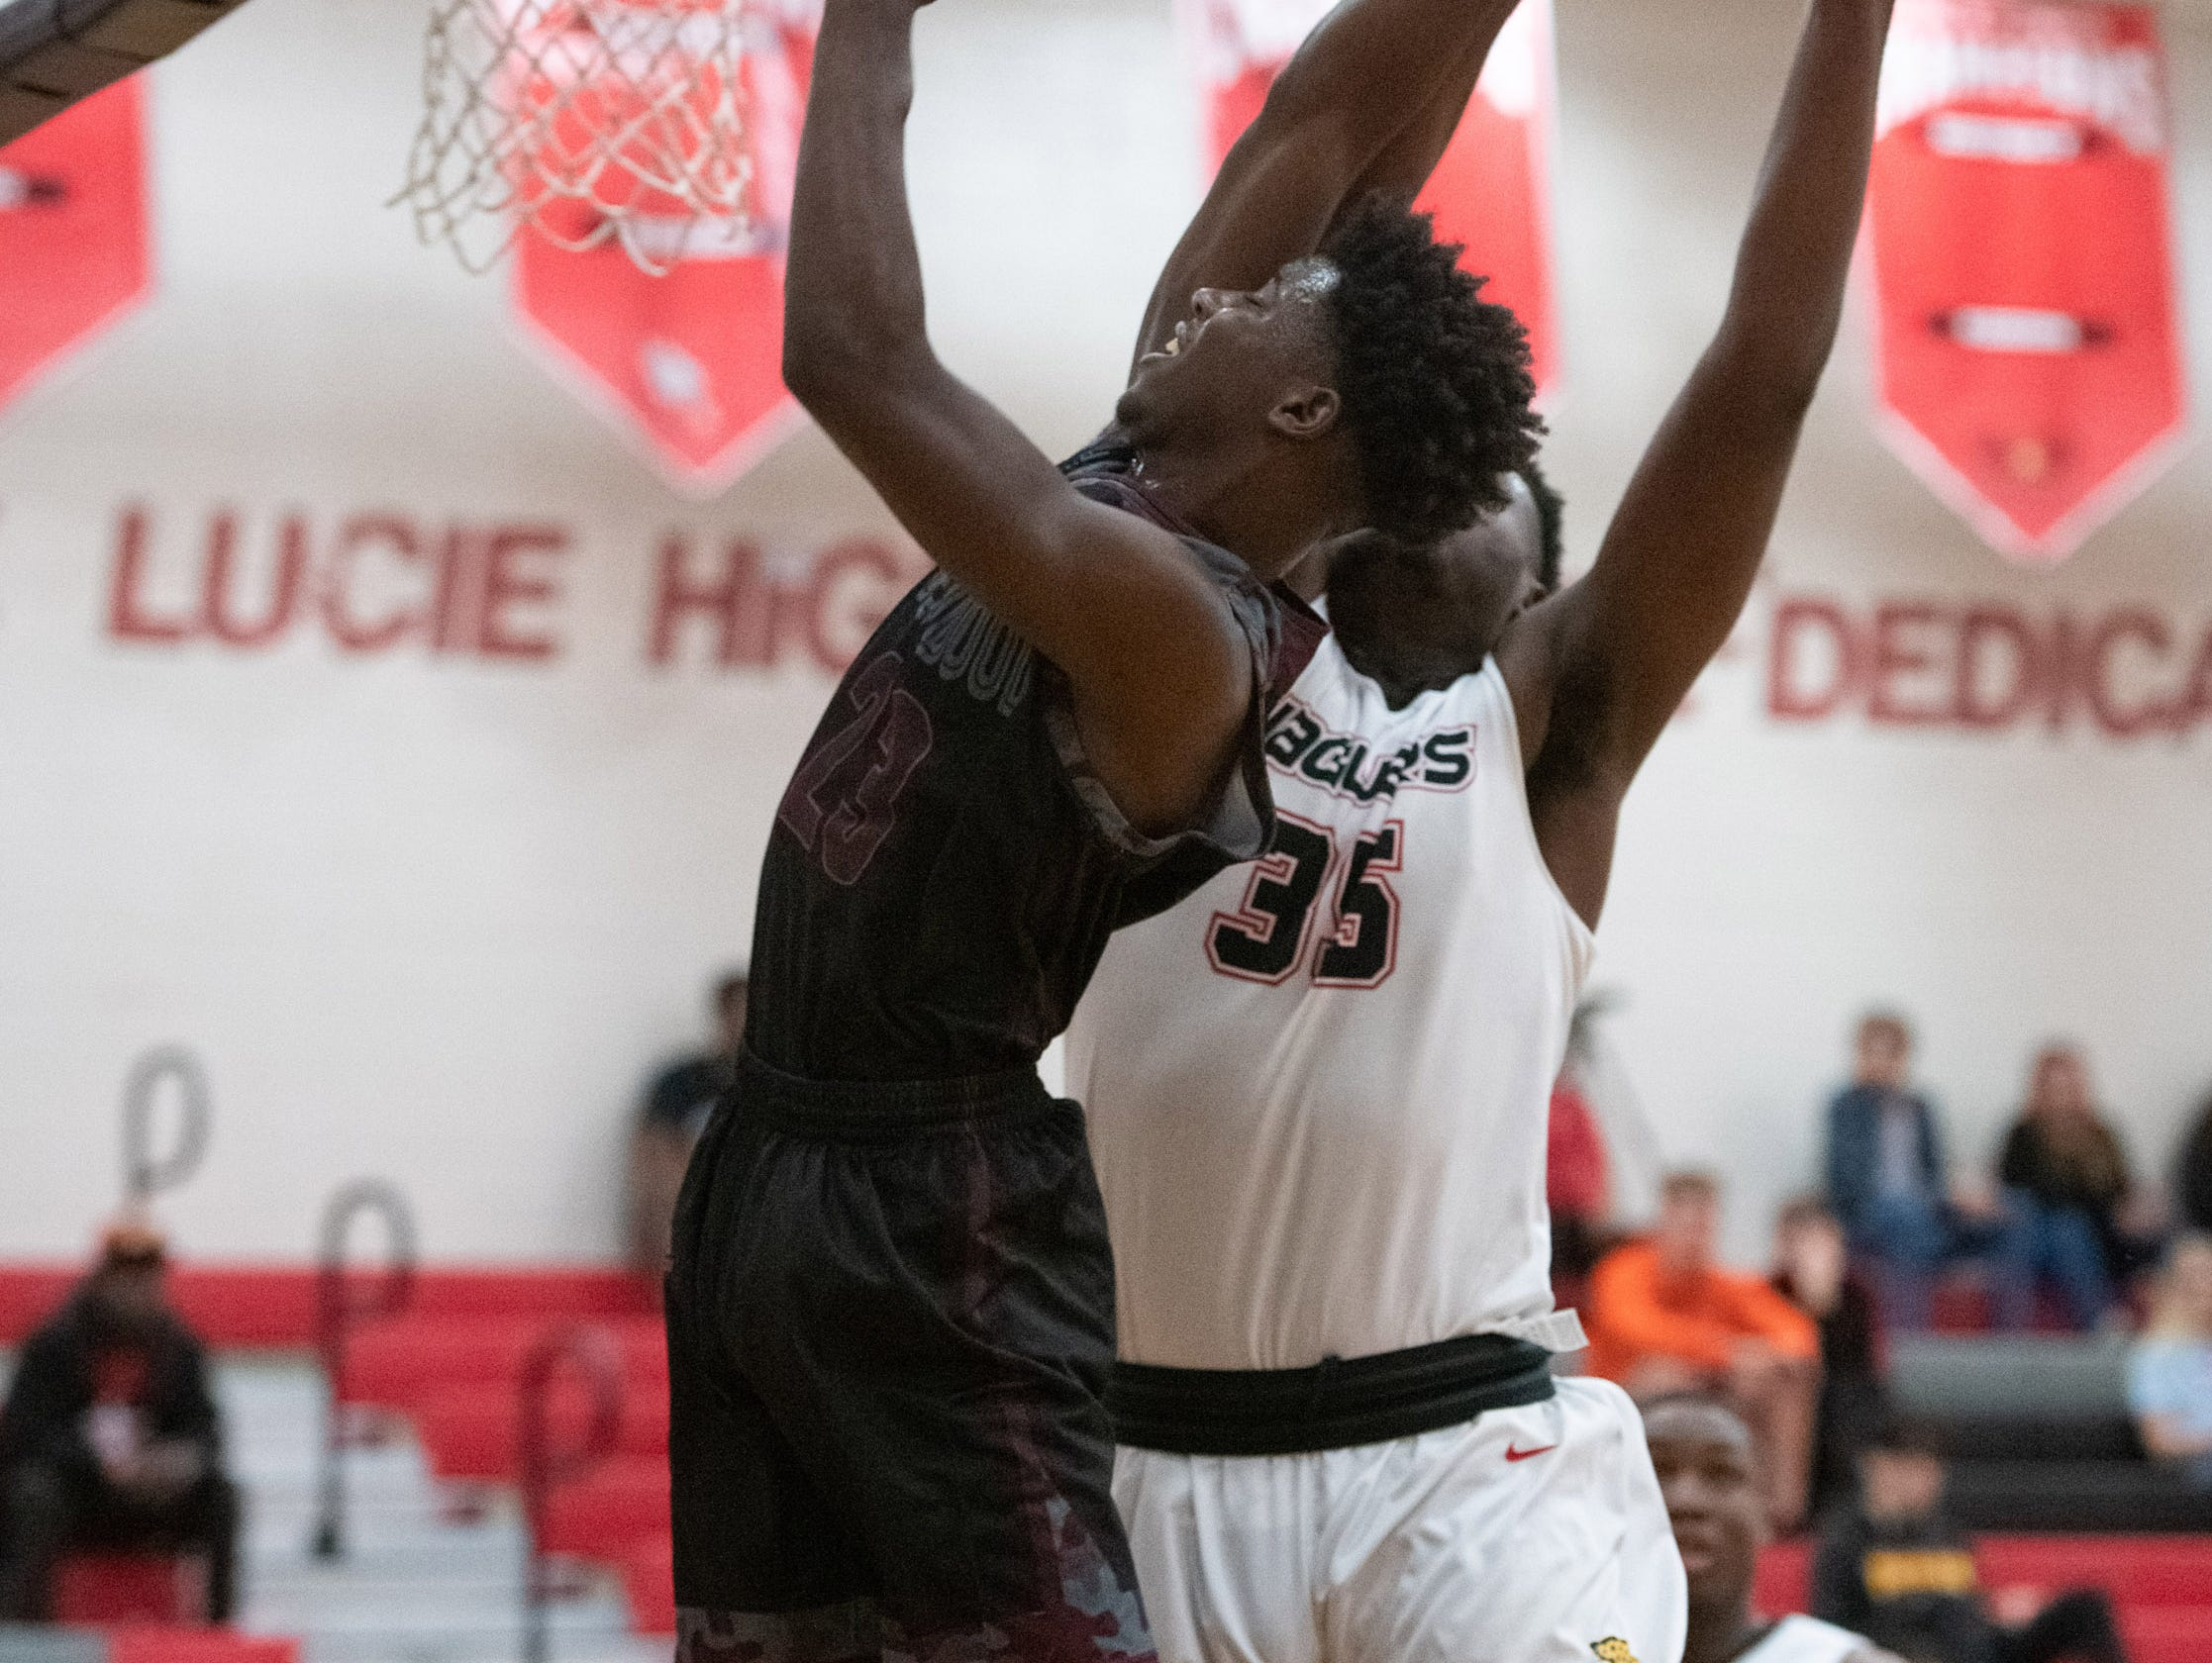 Port St. Lucie plays against Fort Pierce Westwood during the high school boys basketball game Tuesday, Jan. 29, 2019, at Port St. Lucie High School.